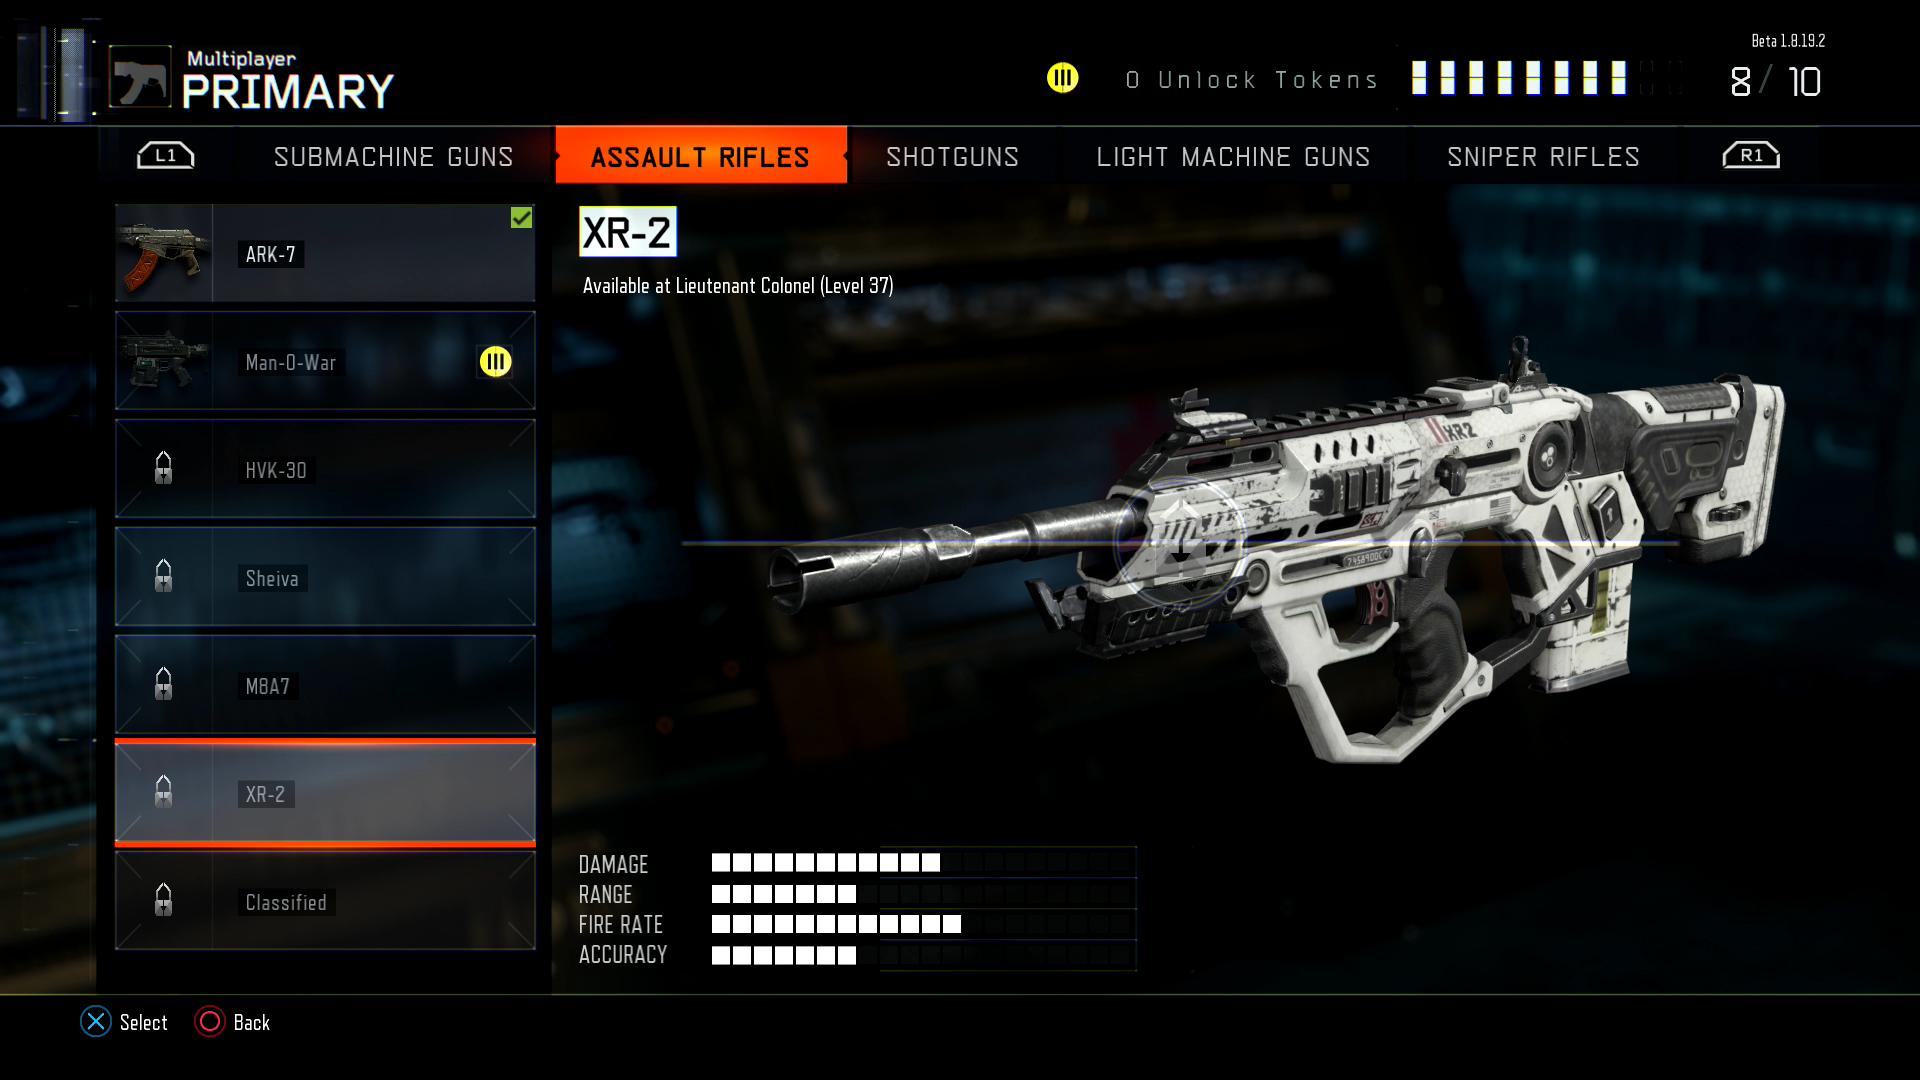 Call of Duty: Black Ops 3 Beta - All Weapons, Attachments, Perks